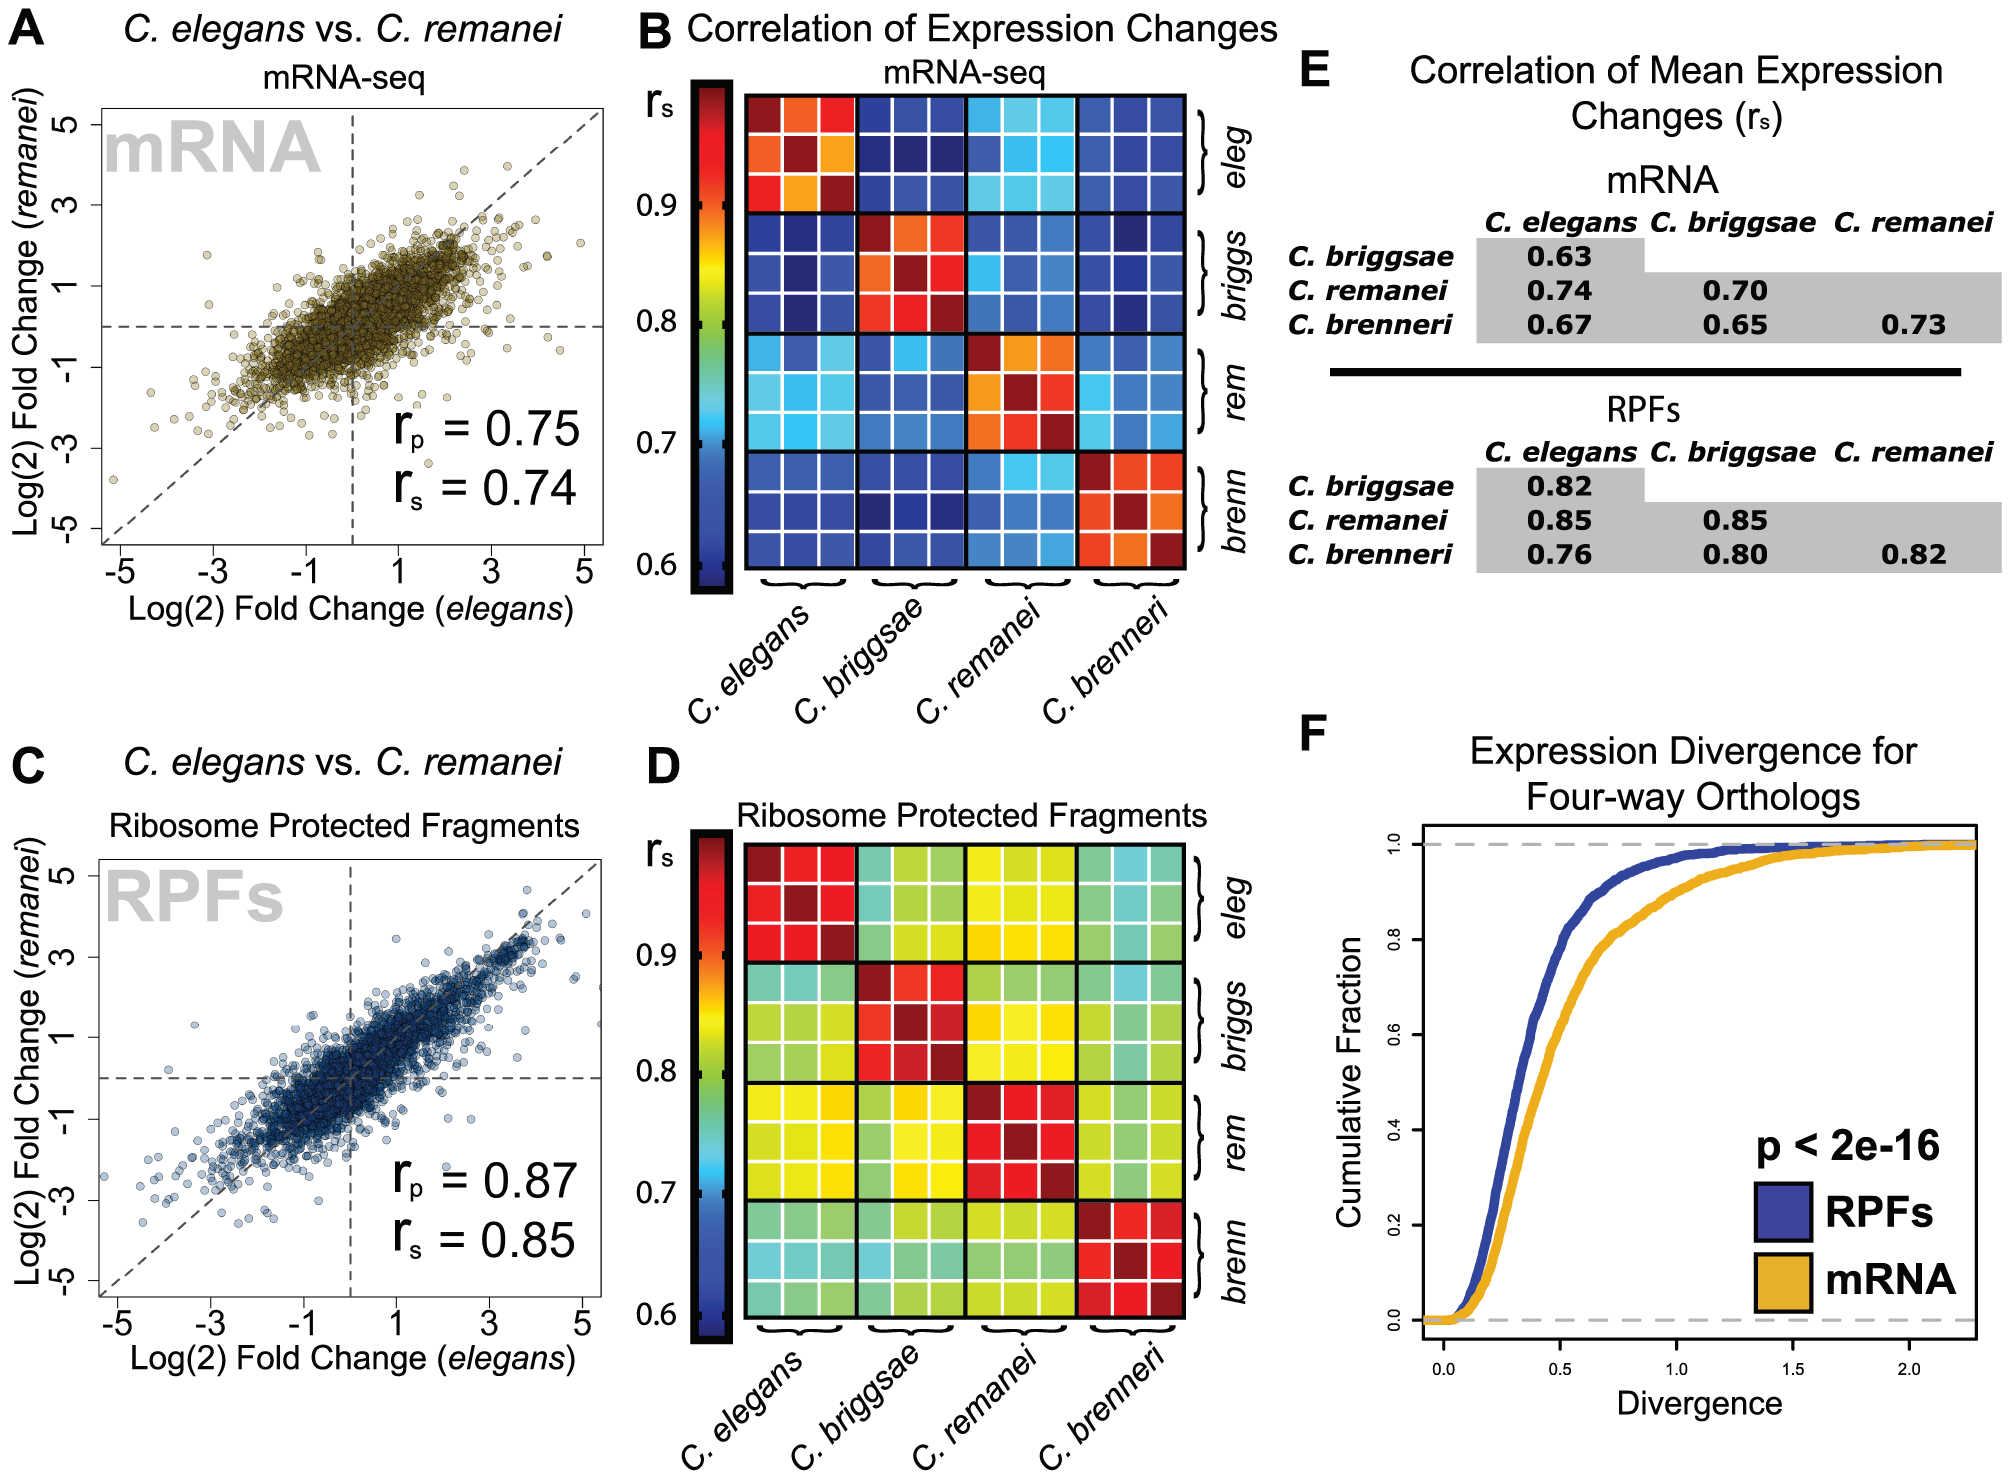 Translatome changes are more similar between species than transcriptome changes.